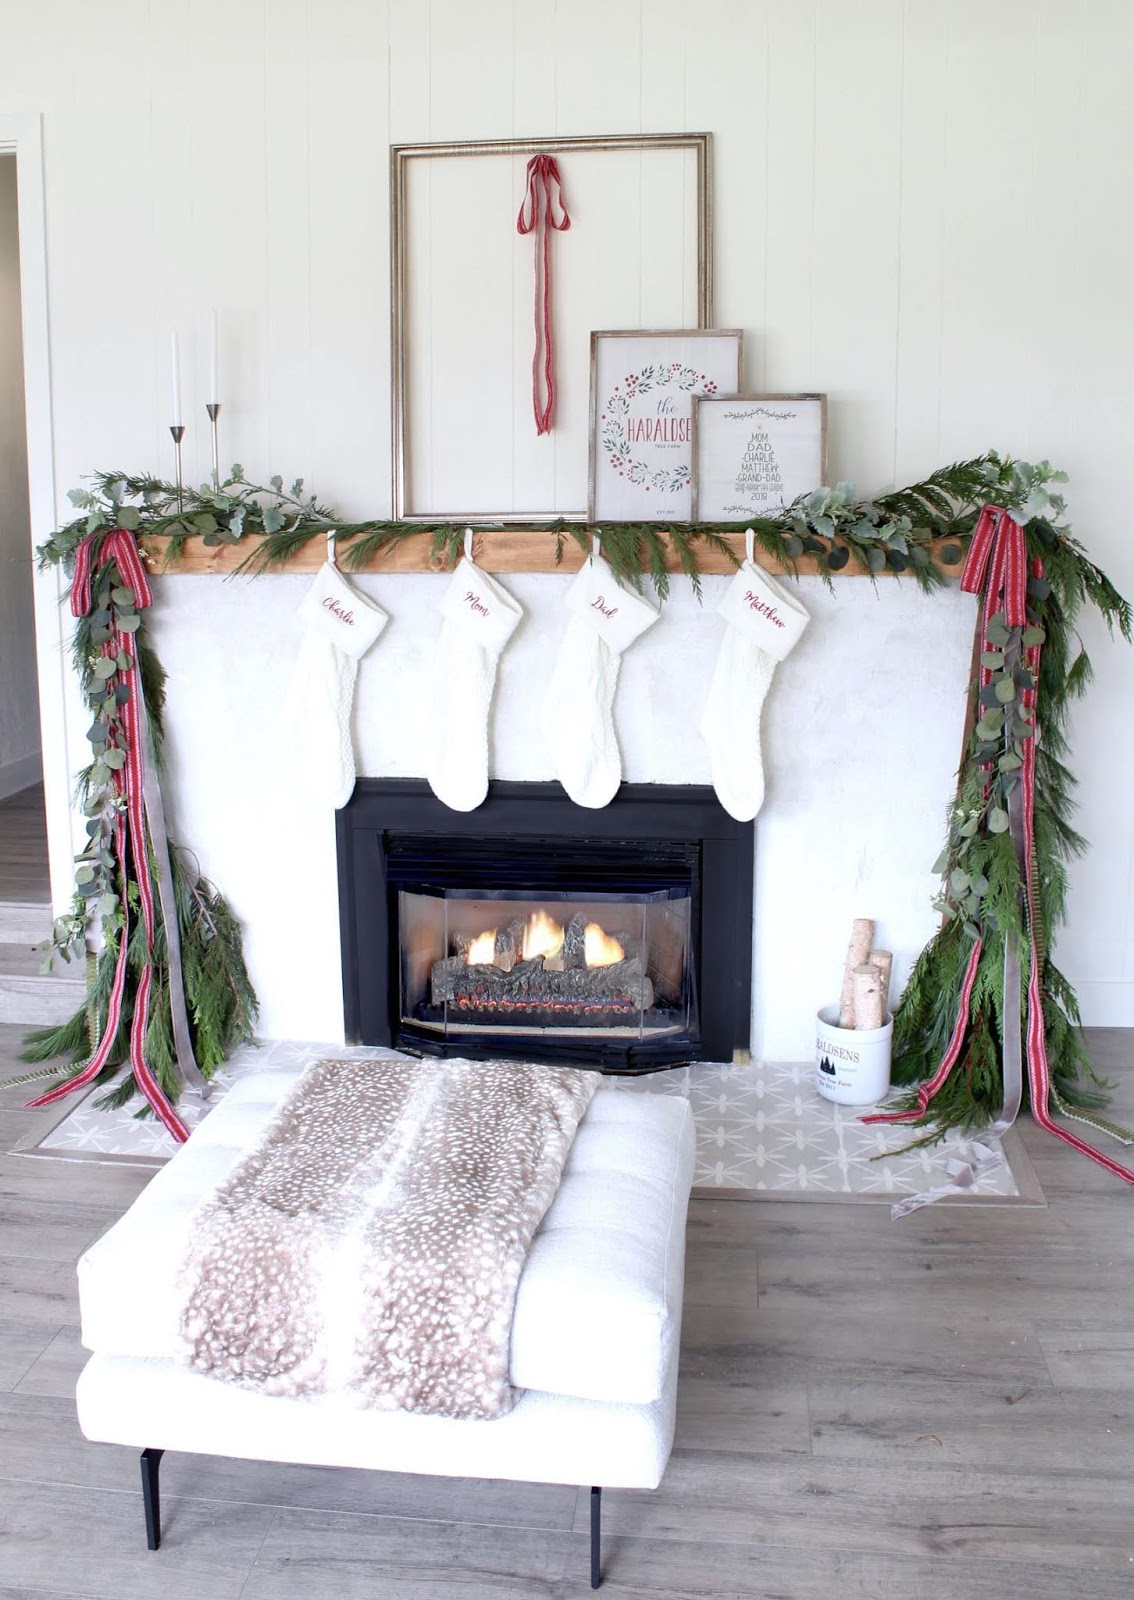 Modern-Holiday-Mantel-ideas-harlow-and-thistle-11